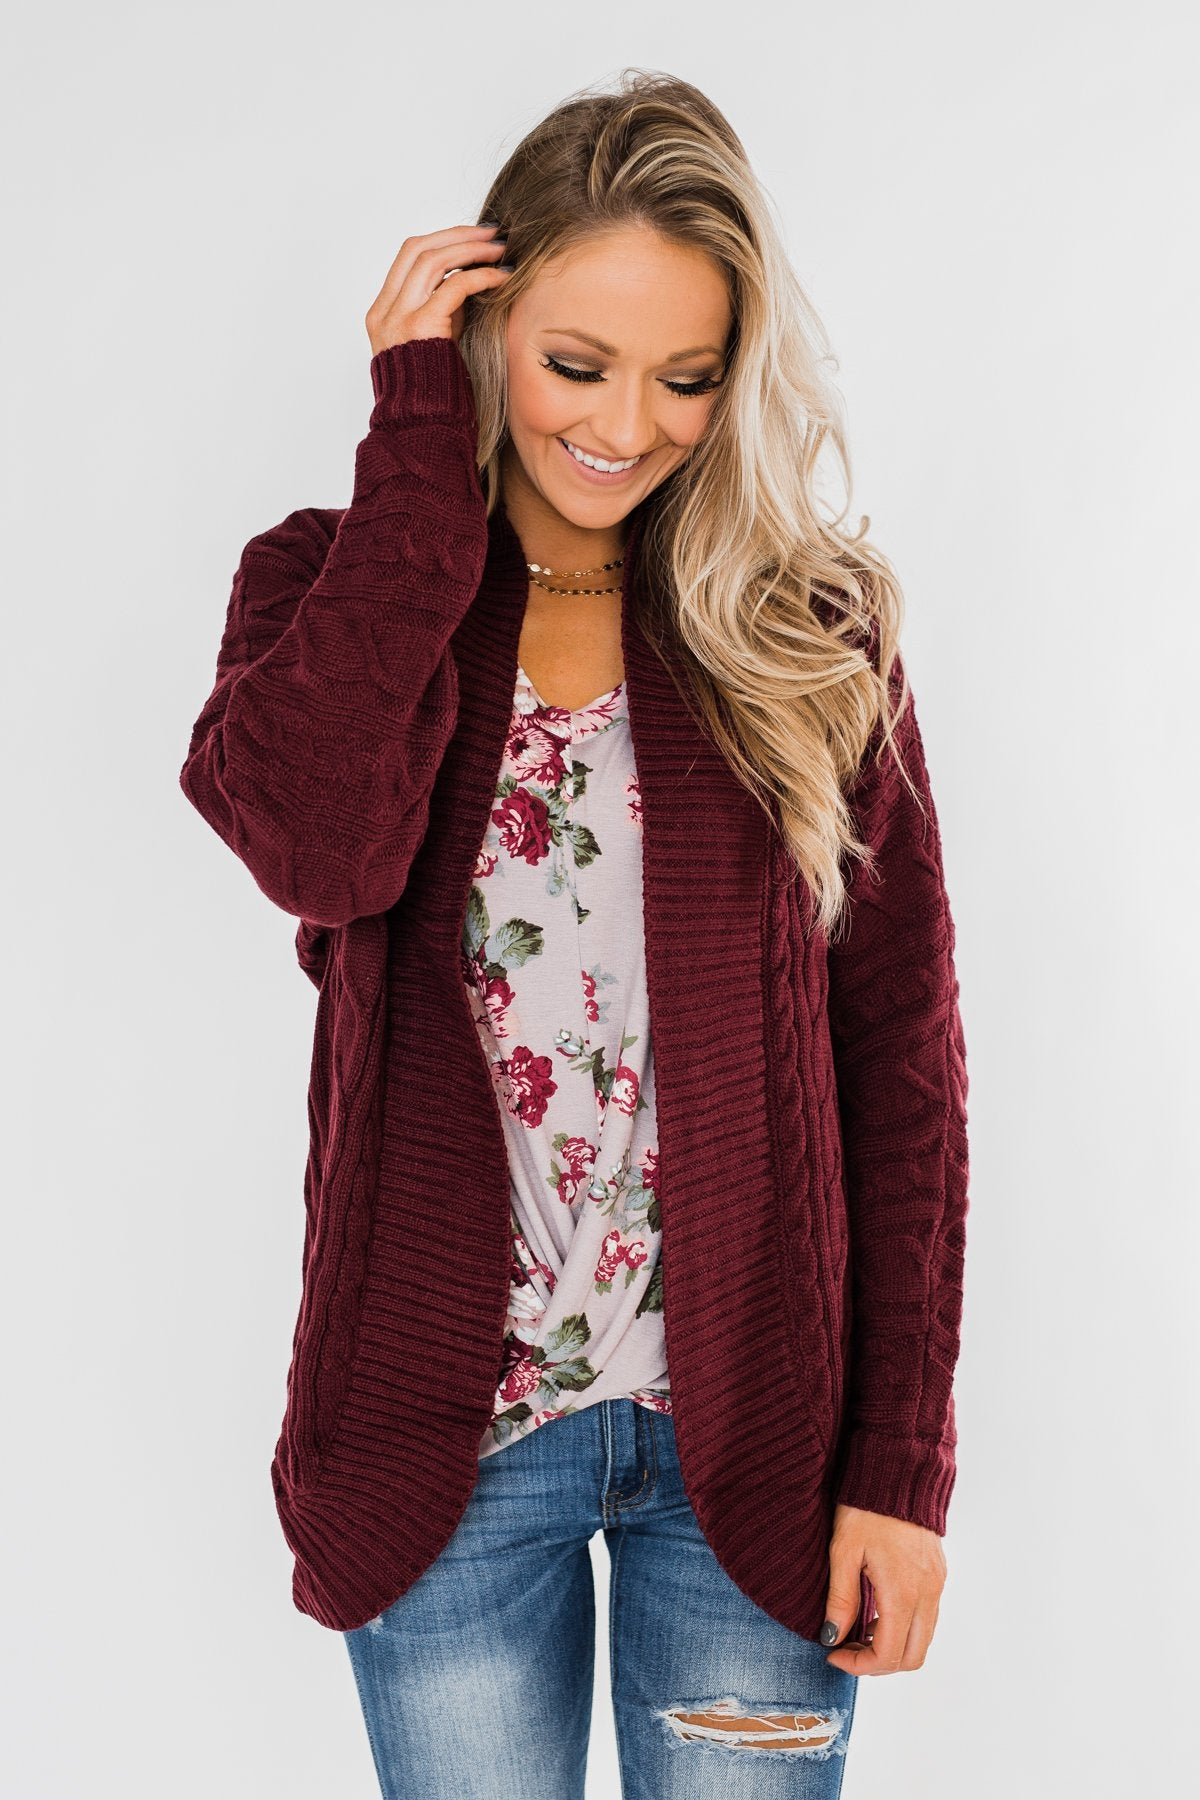 Noticing You Cable Knit Cardigan- Burgundy